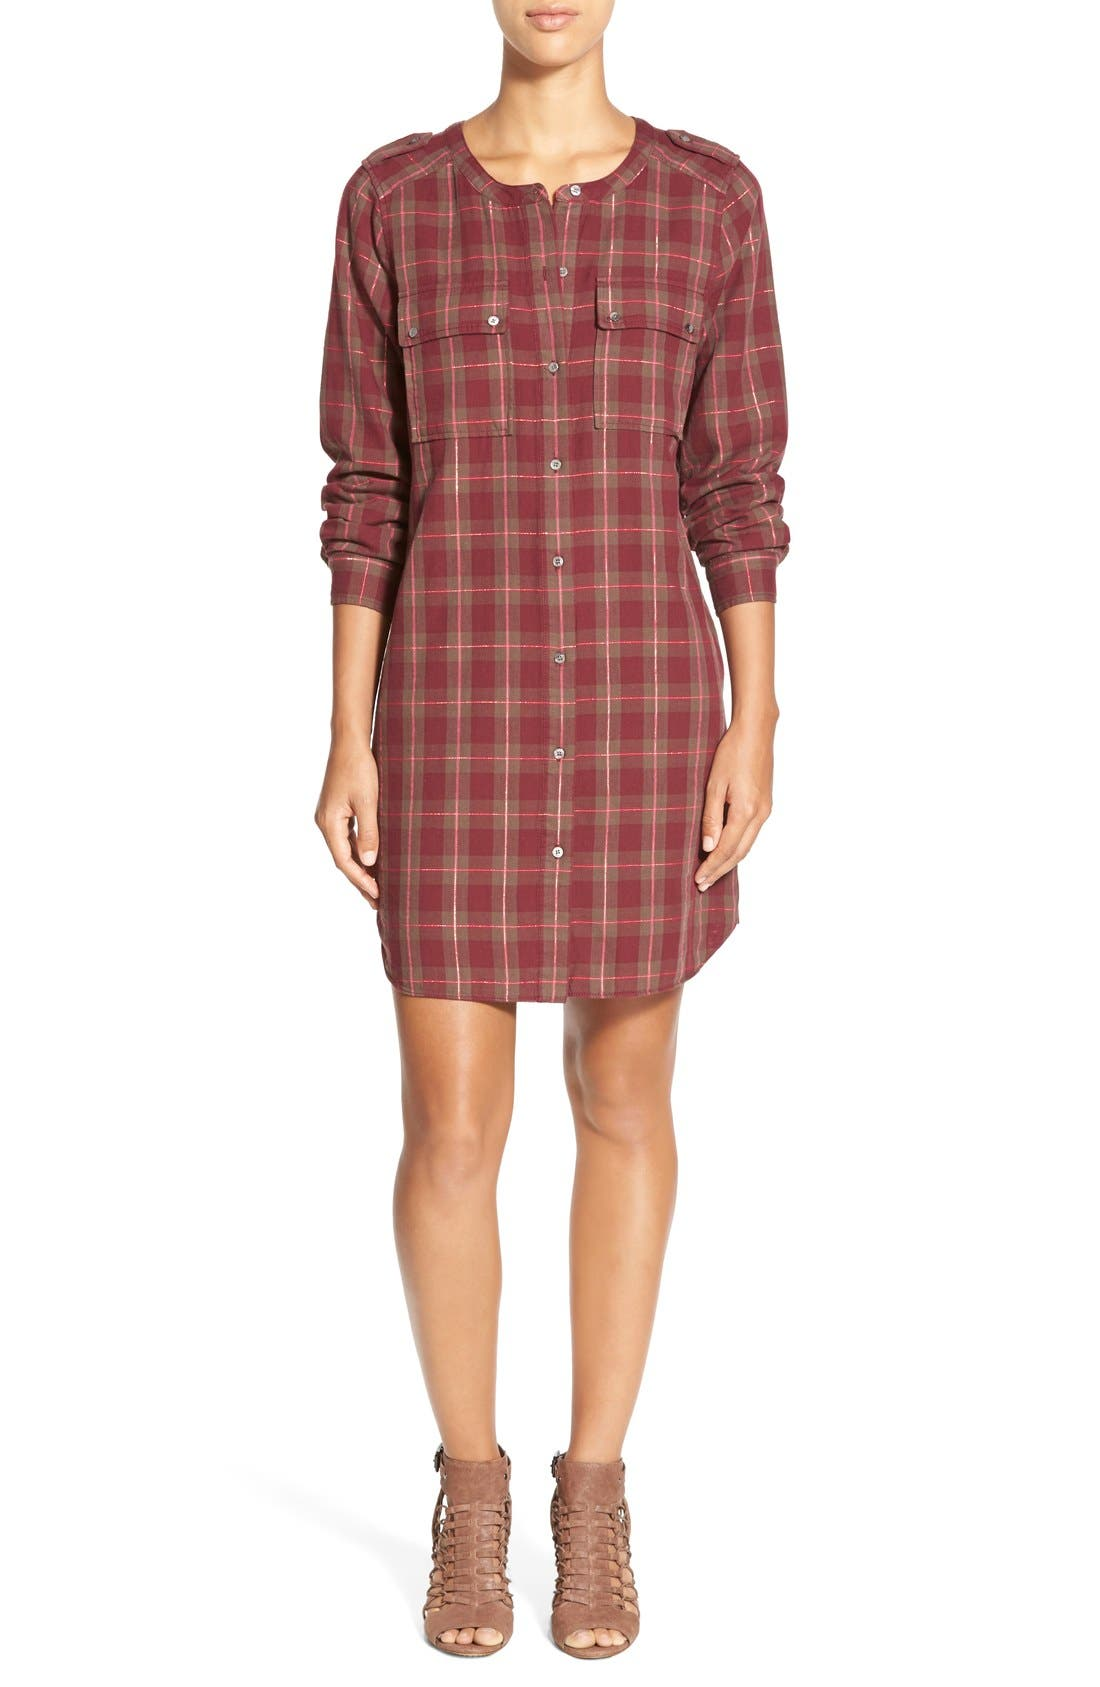 Alternate Image 1 Selected - Two by Vince CamutoPlaid Collarless Shirtdress